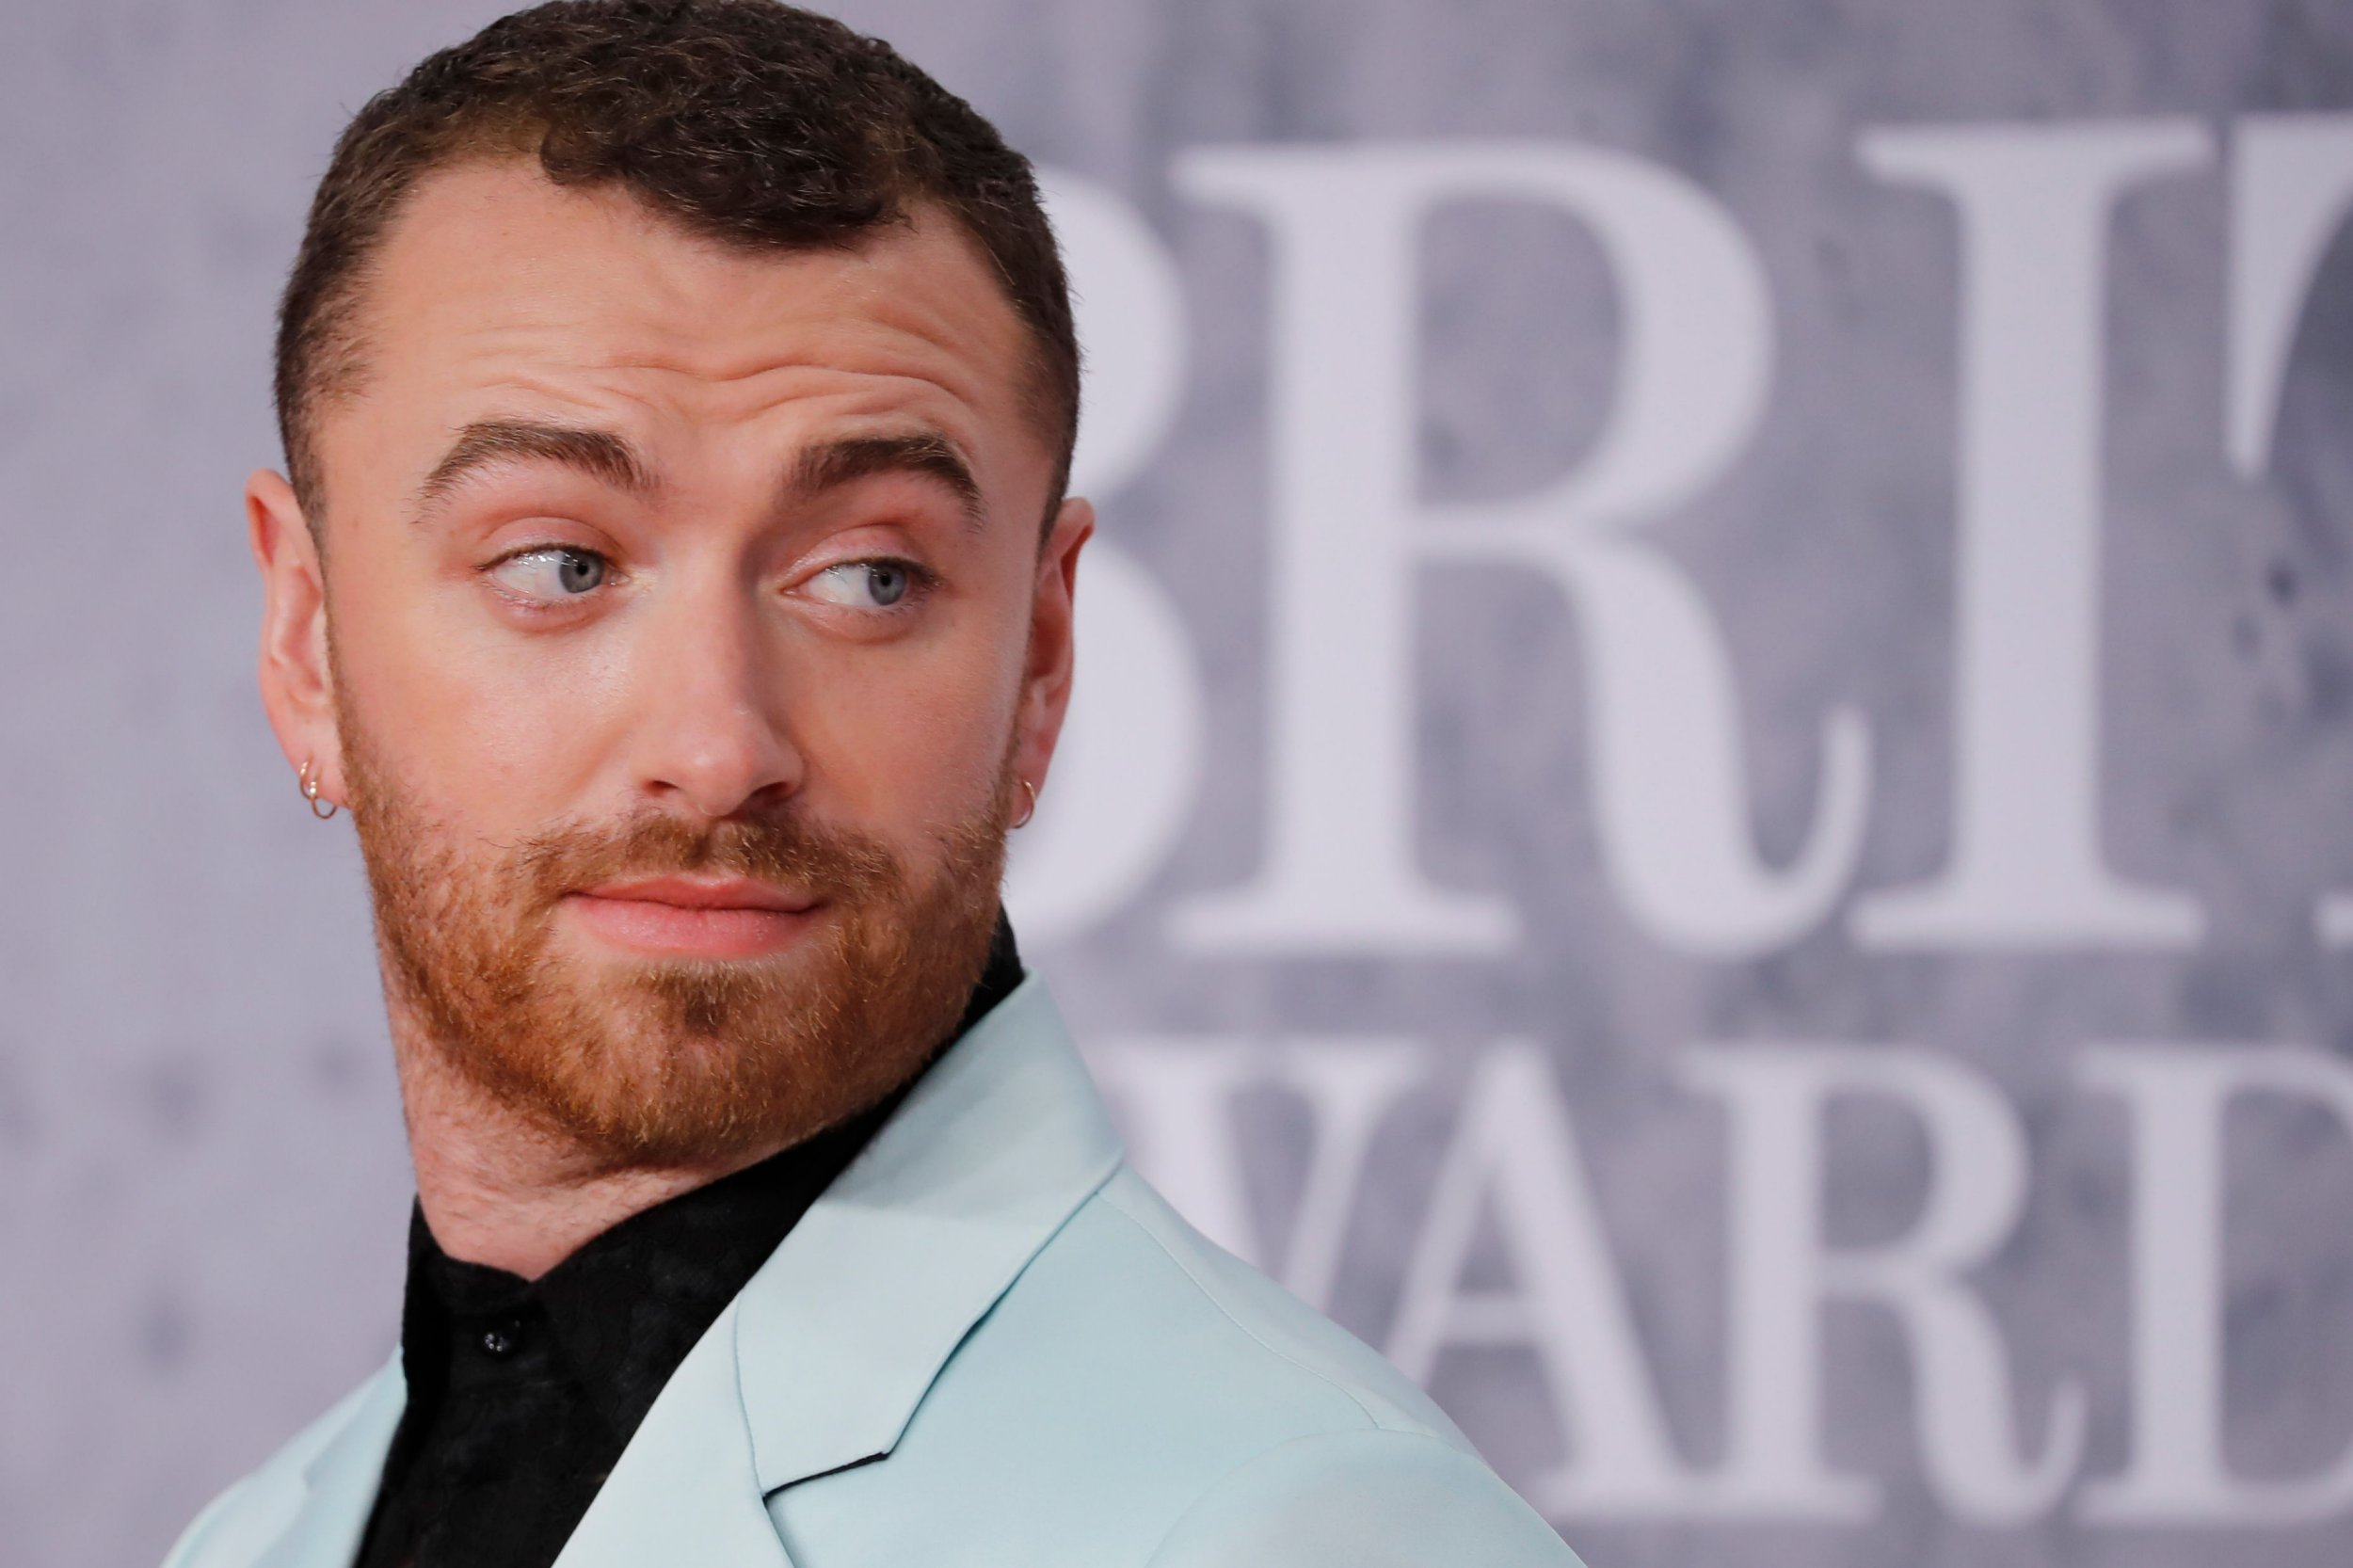 sei_53161537-88ec Sam Smith says his gender is 'non-binary' as he shares his thoughts on sexuality